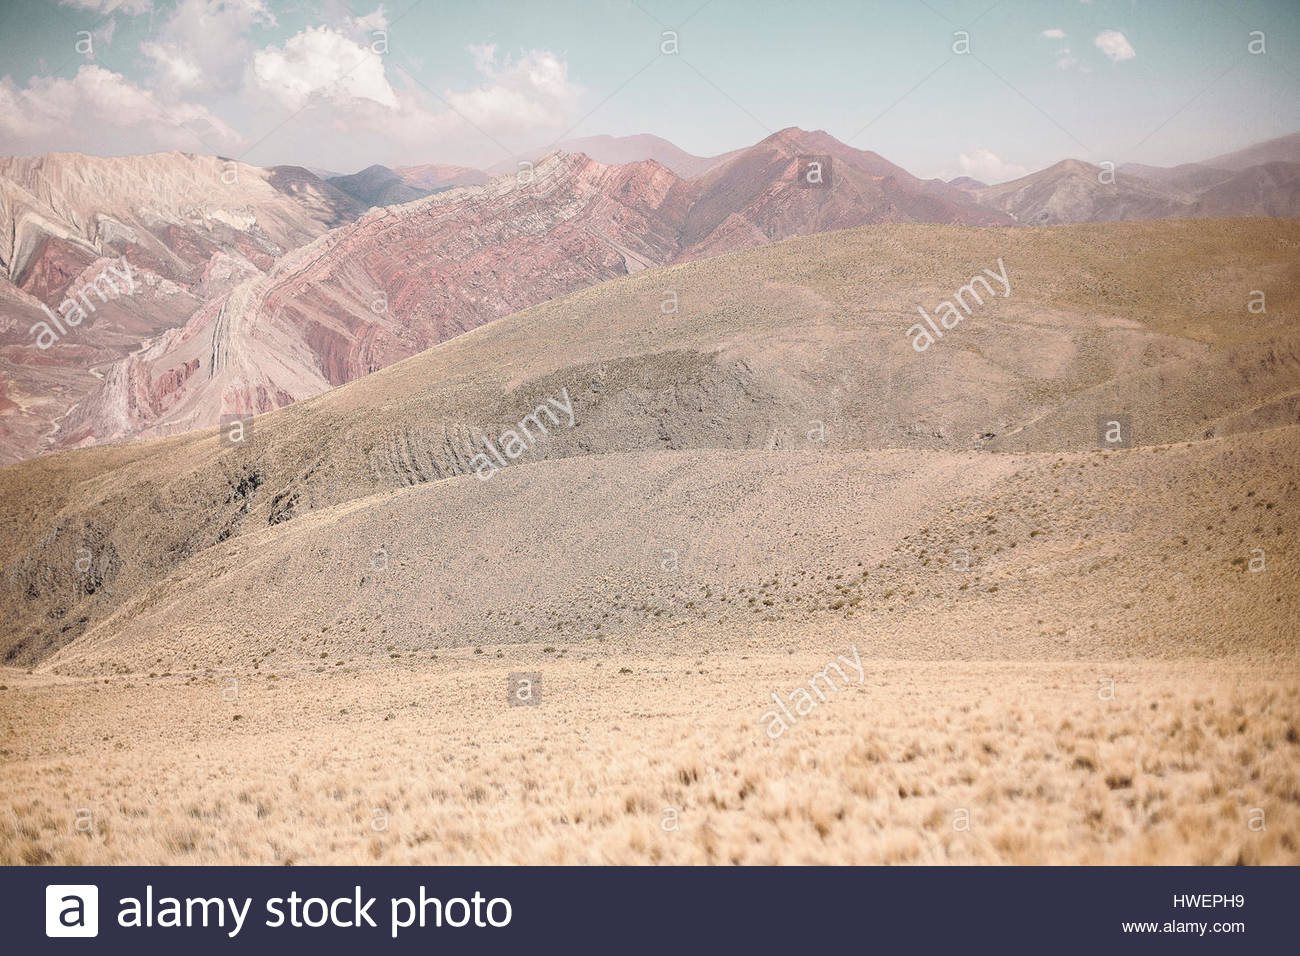 Naturally patterned mountains in Serranía de Hornocal, Jujuy, Argentina - Stock Image